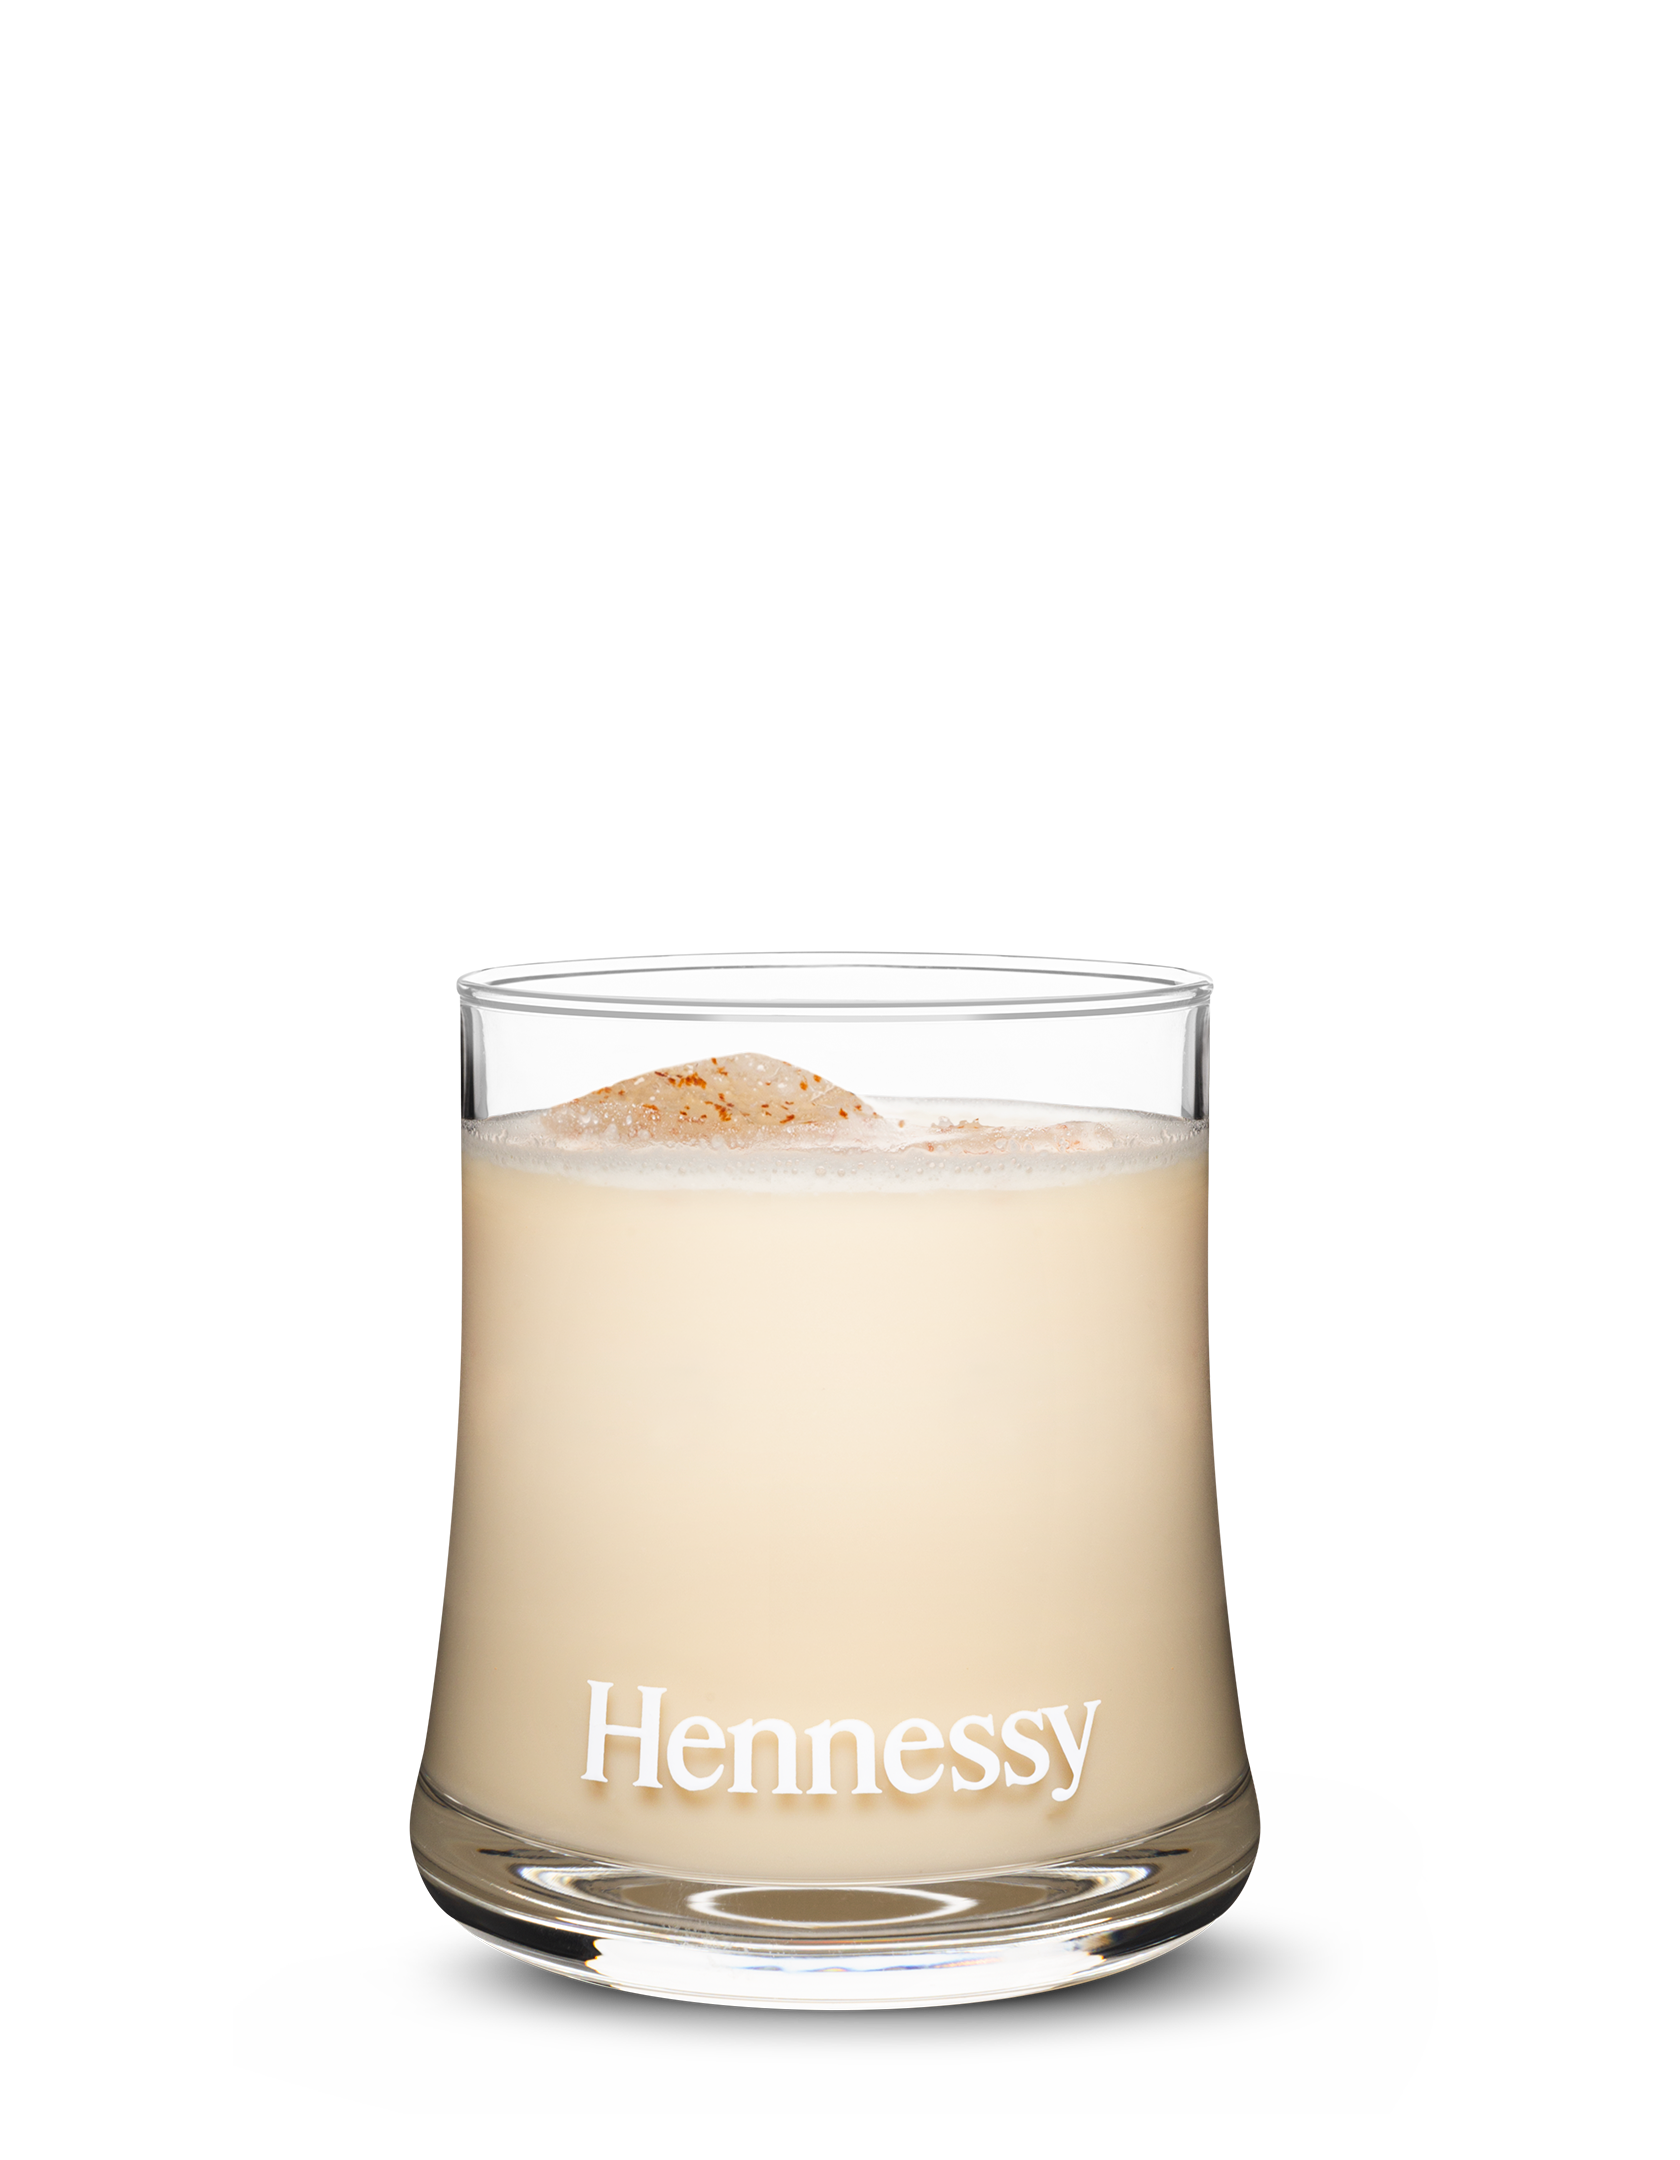 166-THE-HENNESSY-COQUI-SIMPL-RVB.png